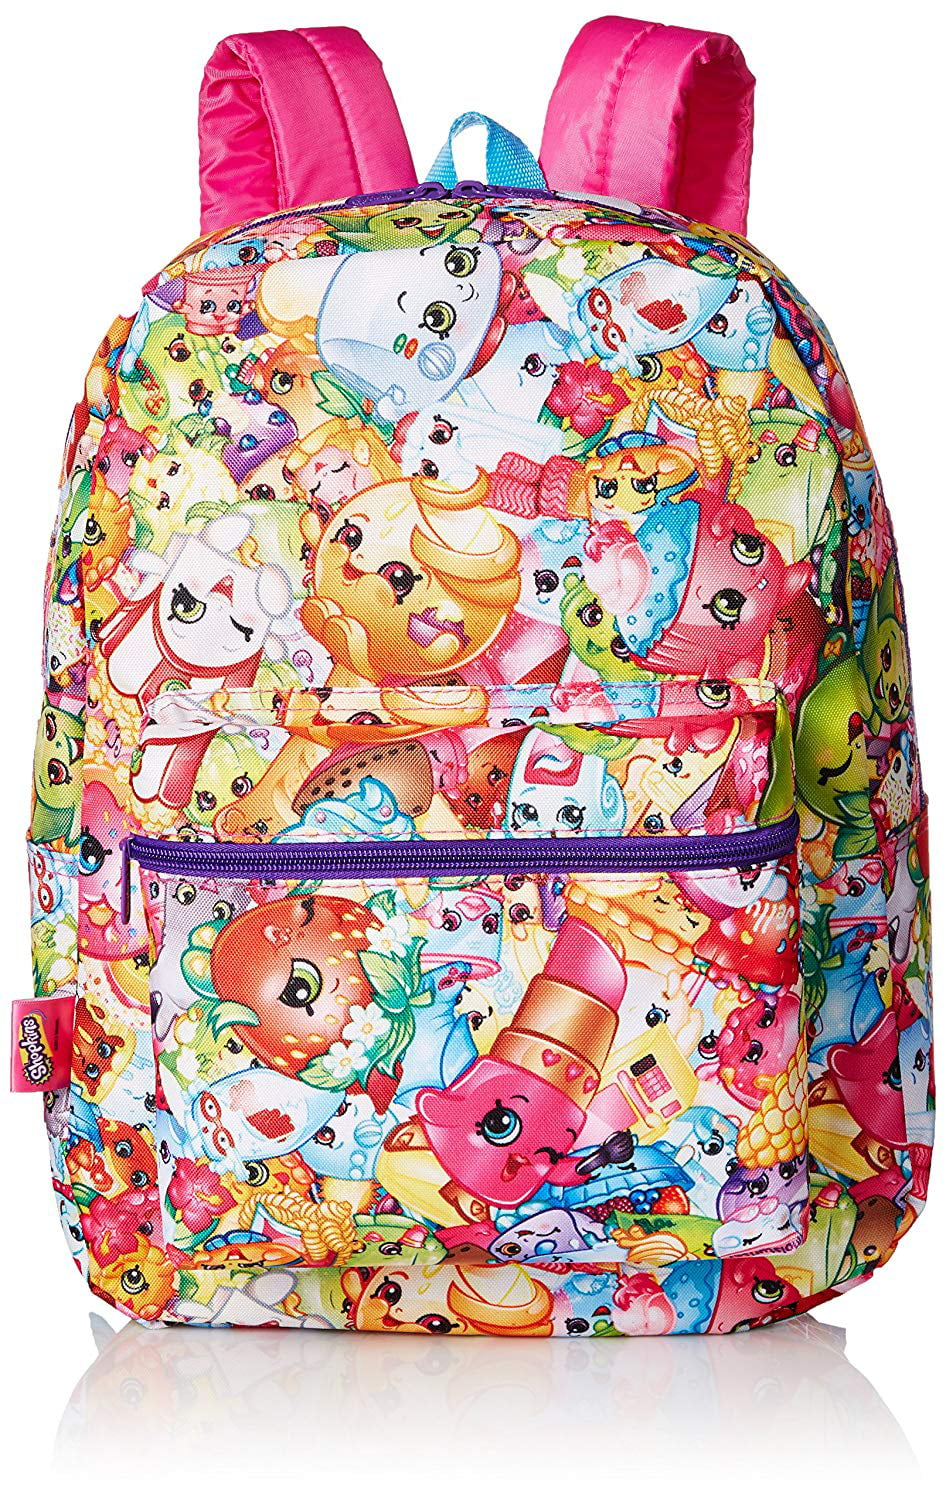 Shopkins Girls Backpack Headphones and Coin Purse Gift Set AE29976SC